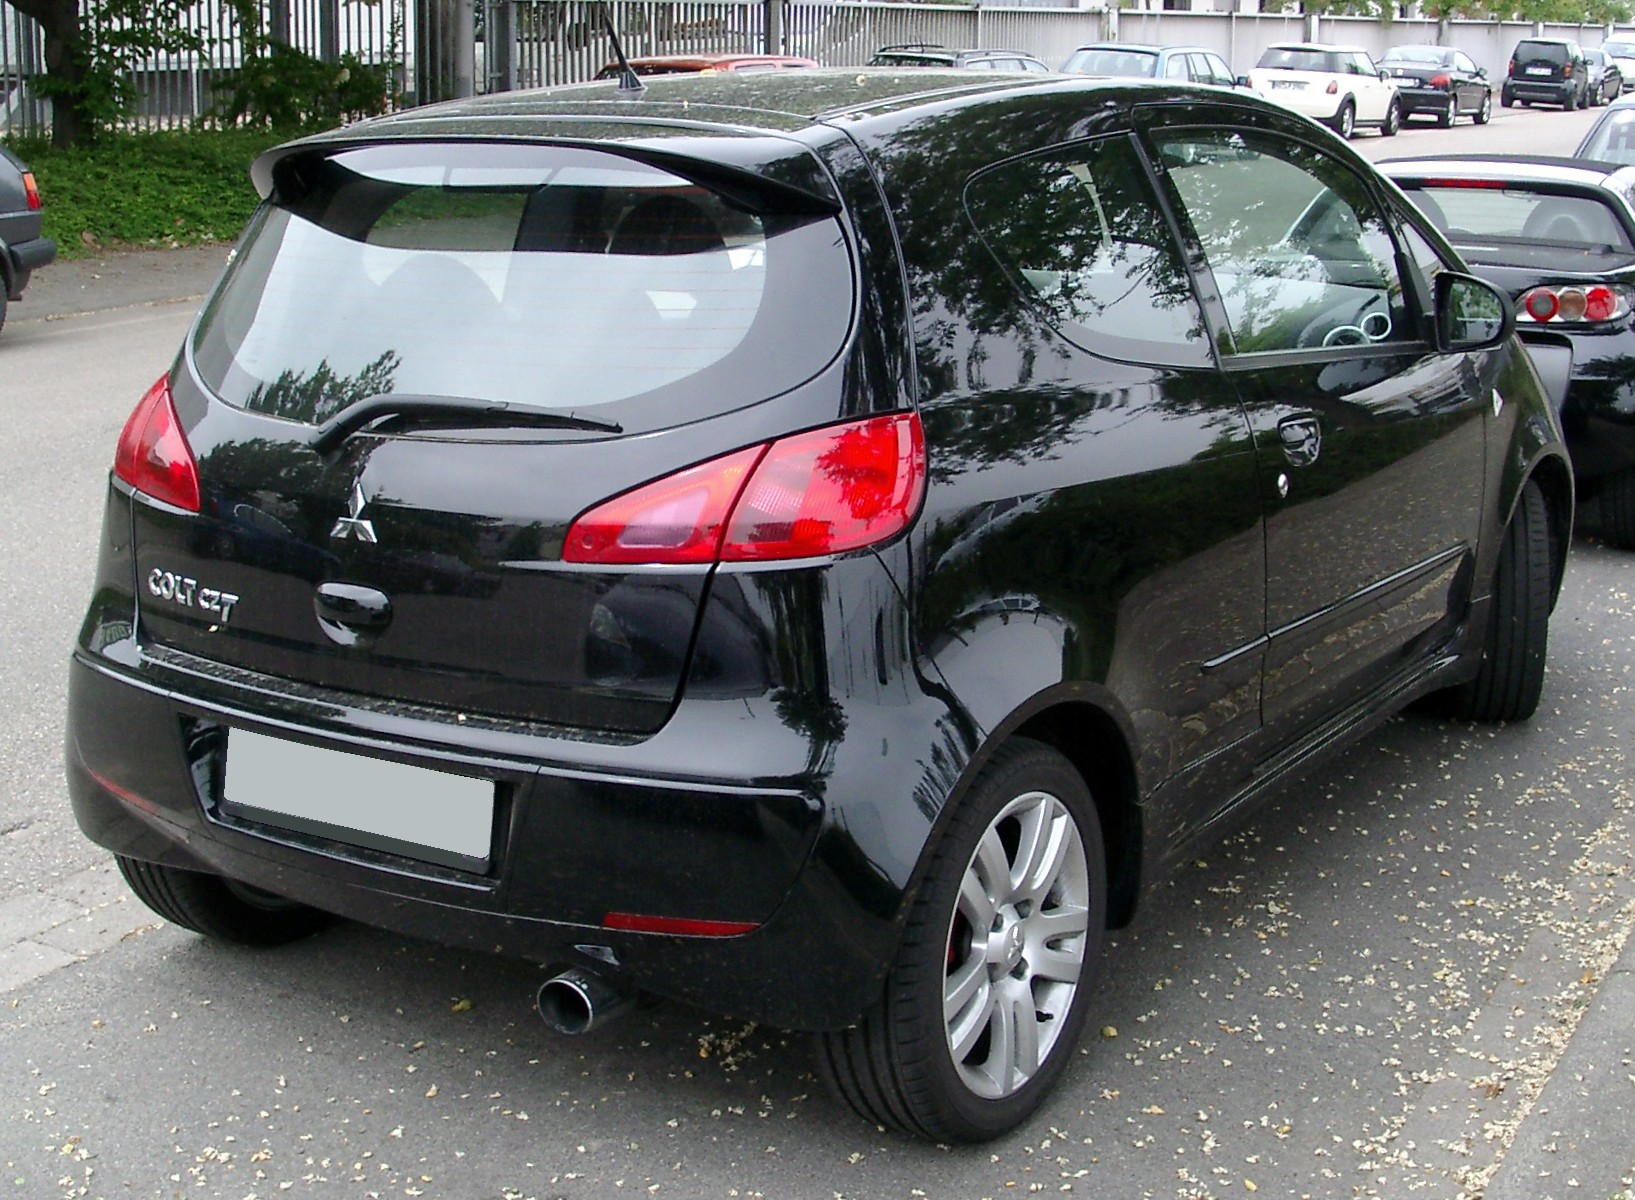 File Mitsubishi Colt Czt Rear 20080527 Jpg Wikimedia Commons